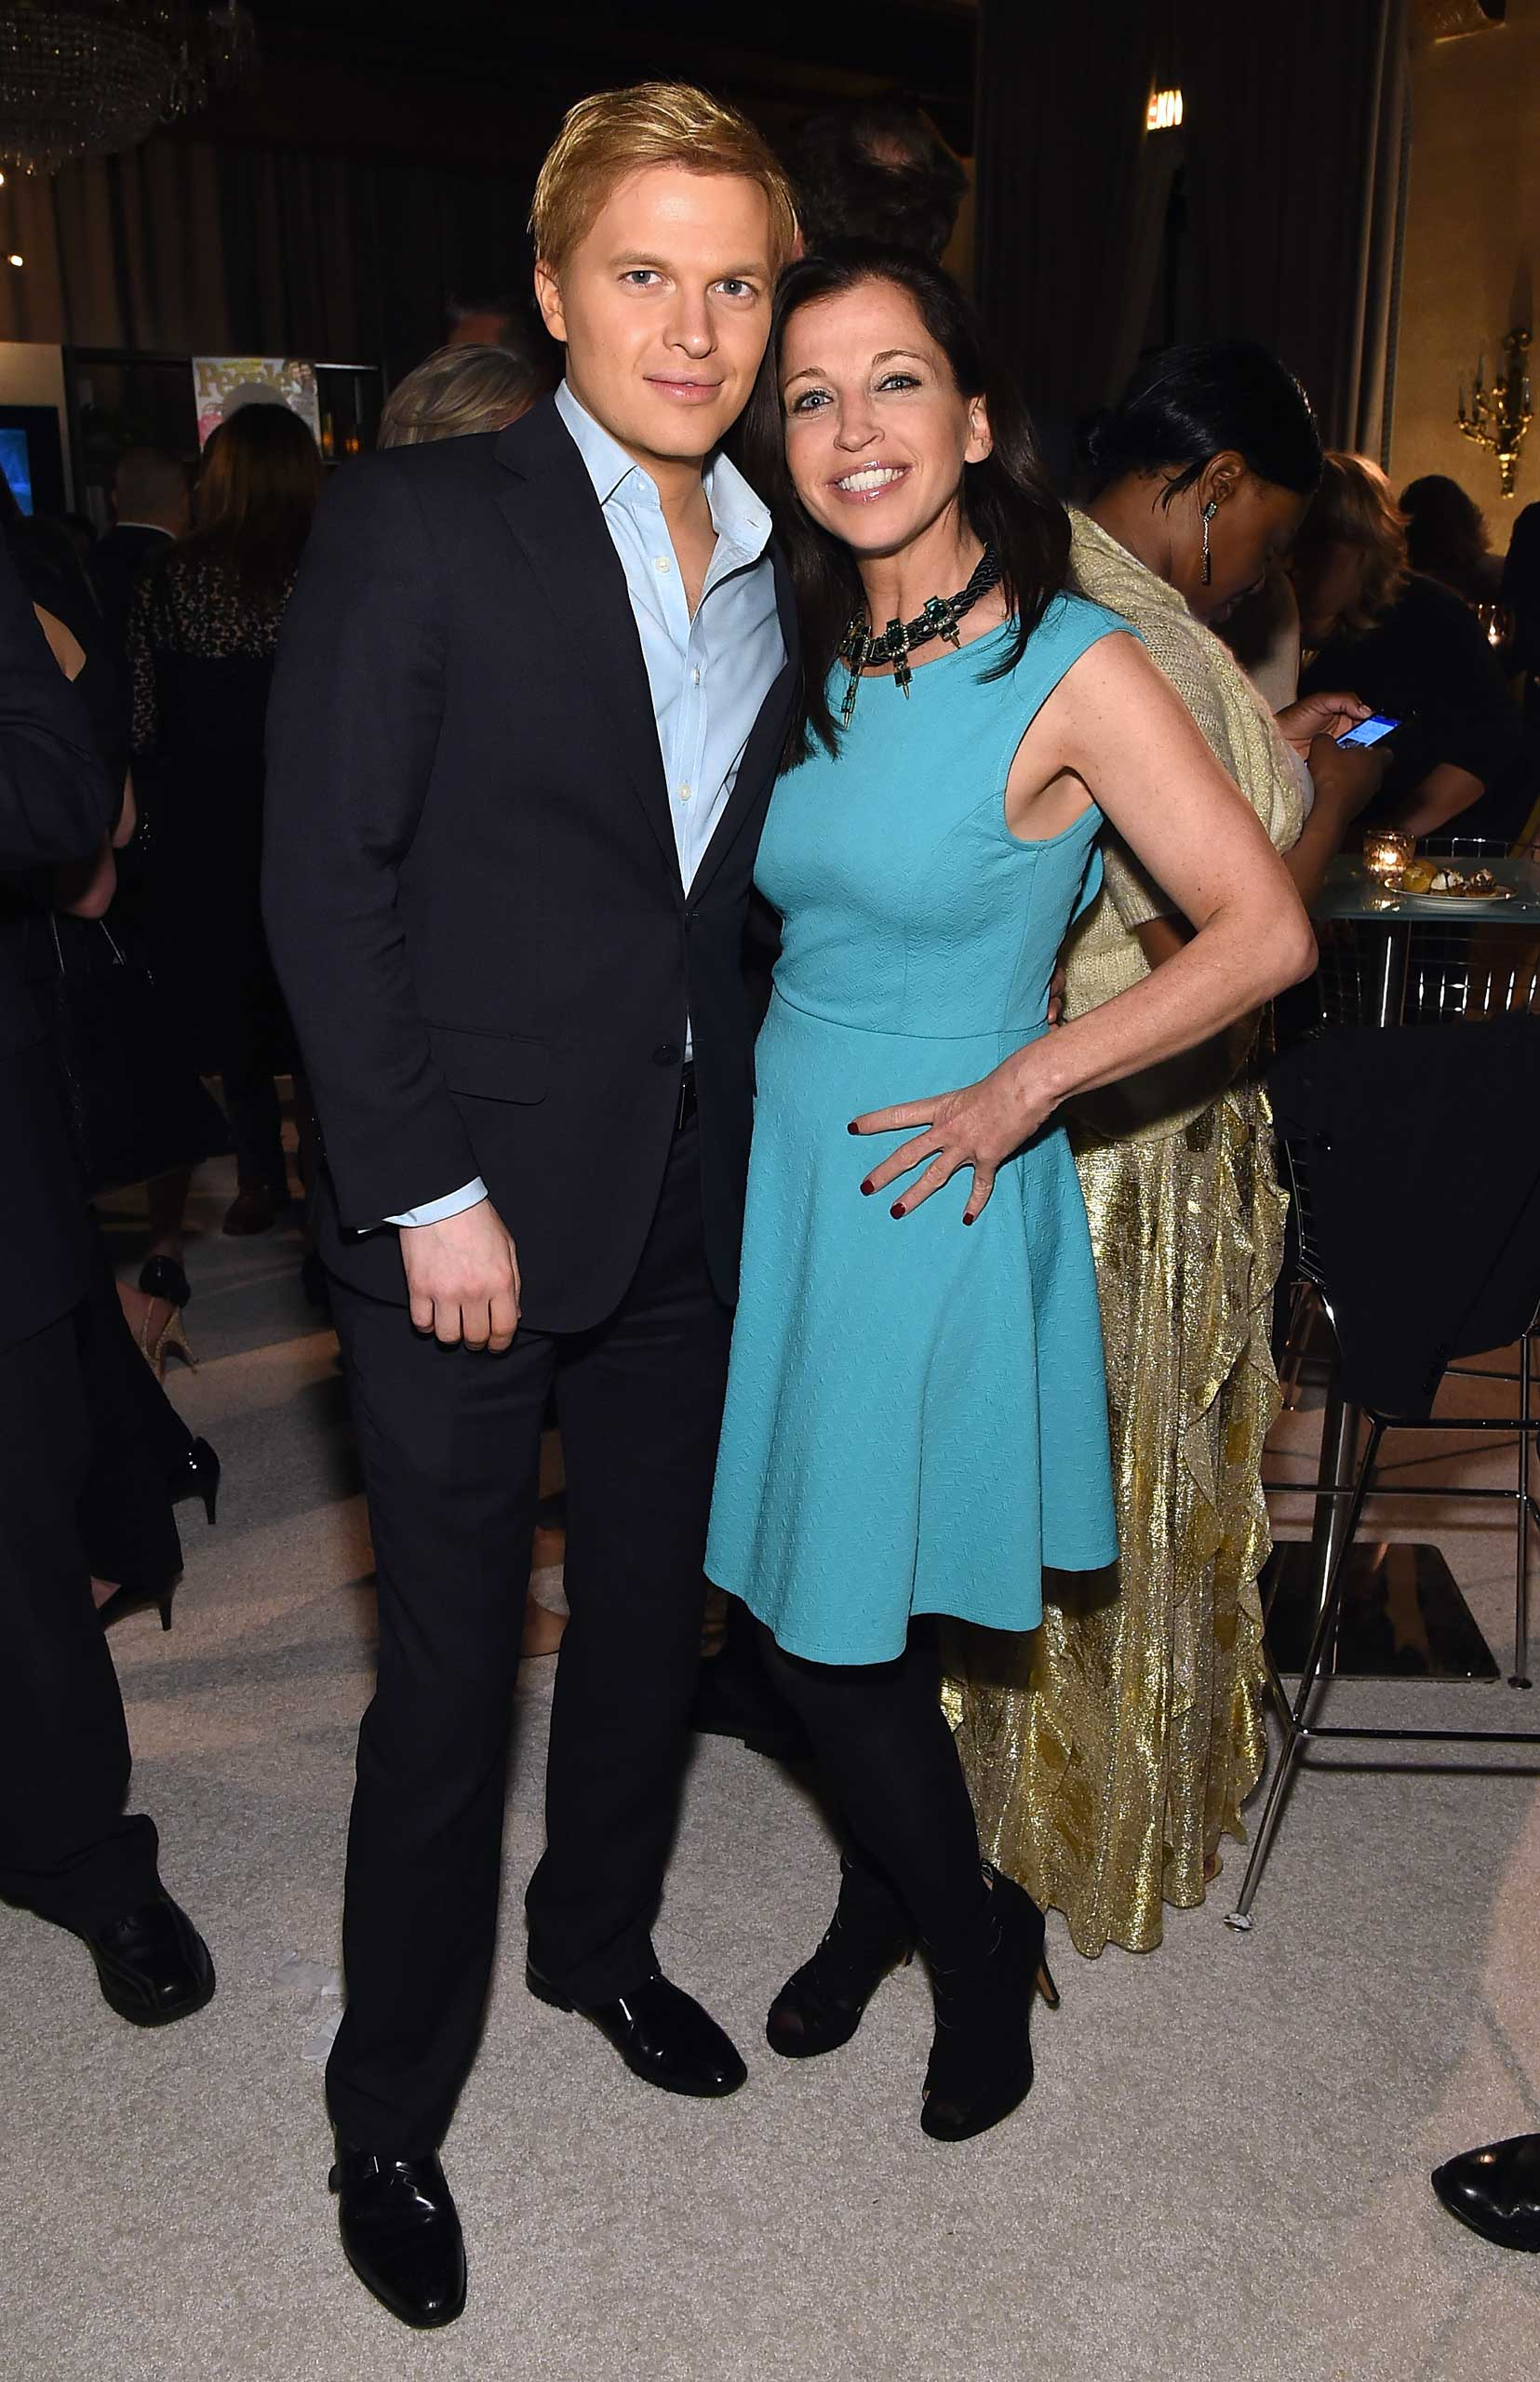 MSNBC's Ronan Farrow and author and reality TV personality Wendy Diamond